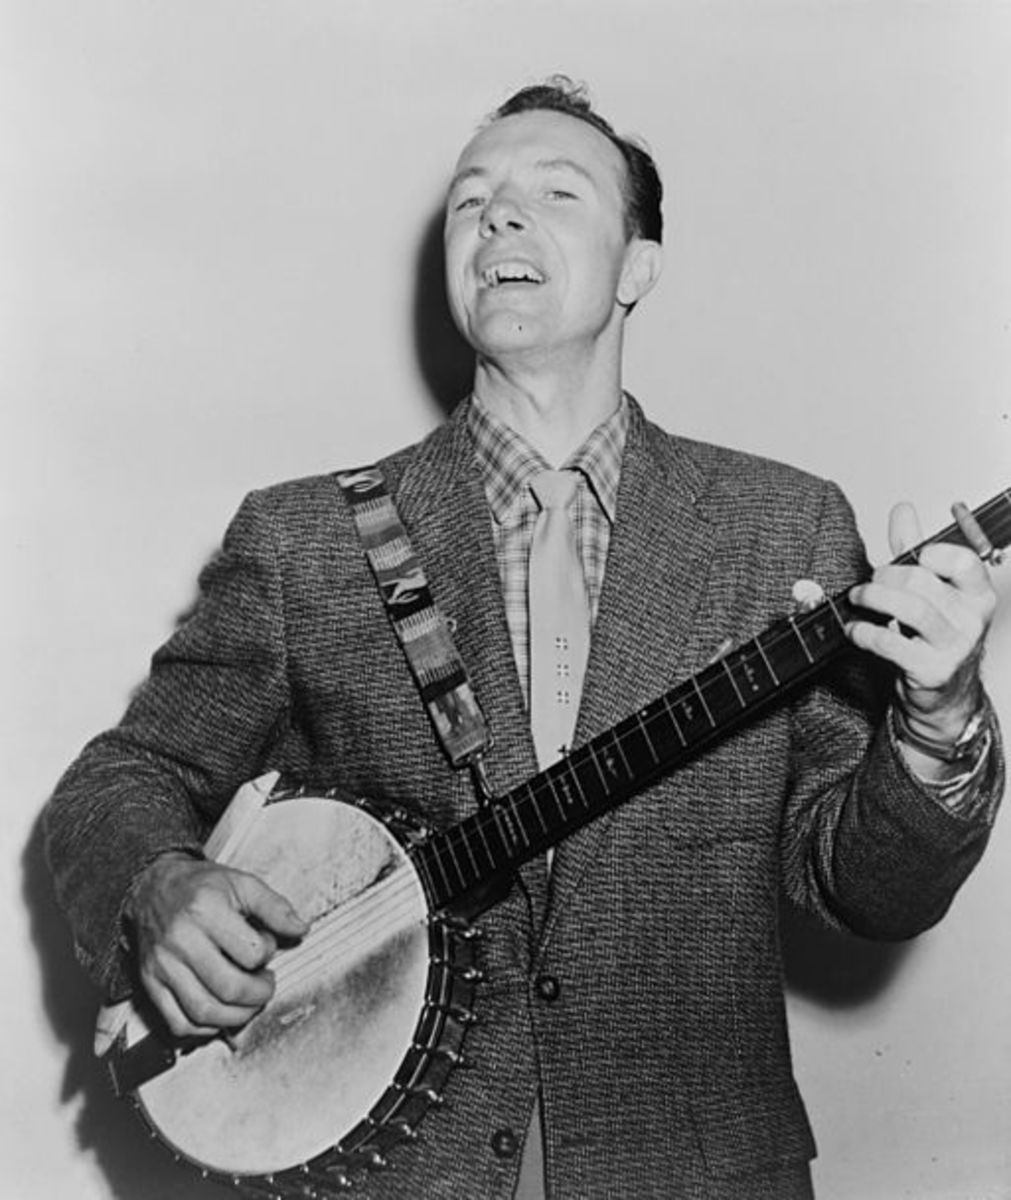 Taken the same year Pete Seeger appeared before HUAC.